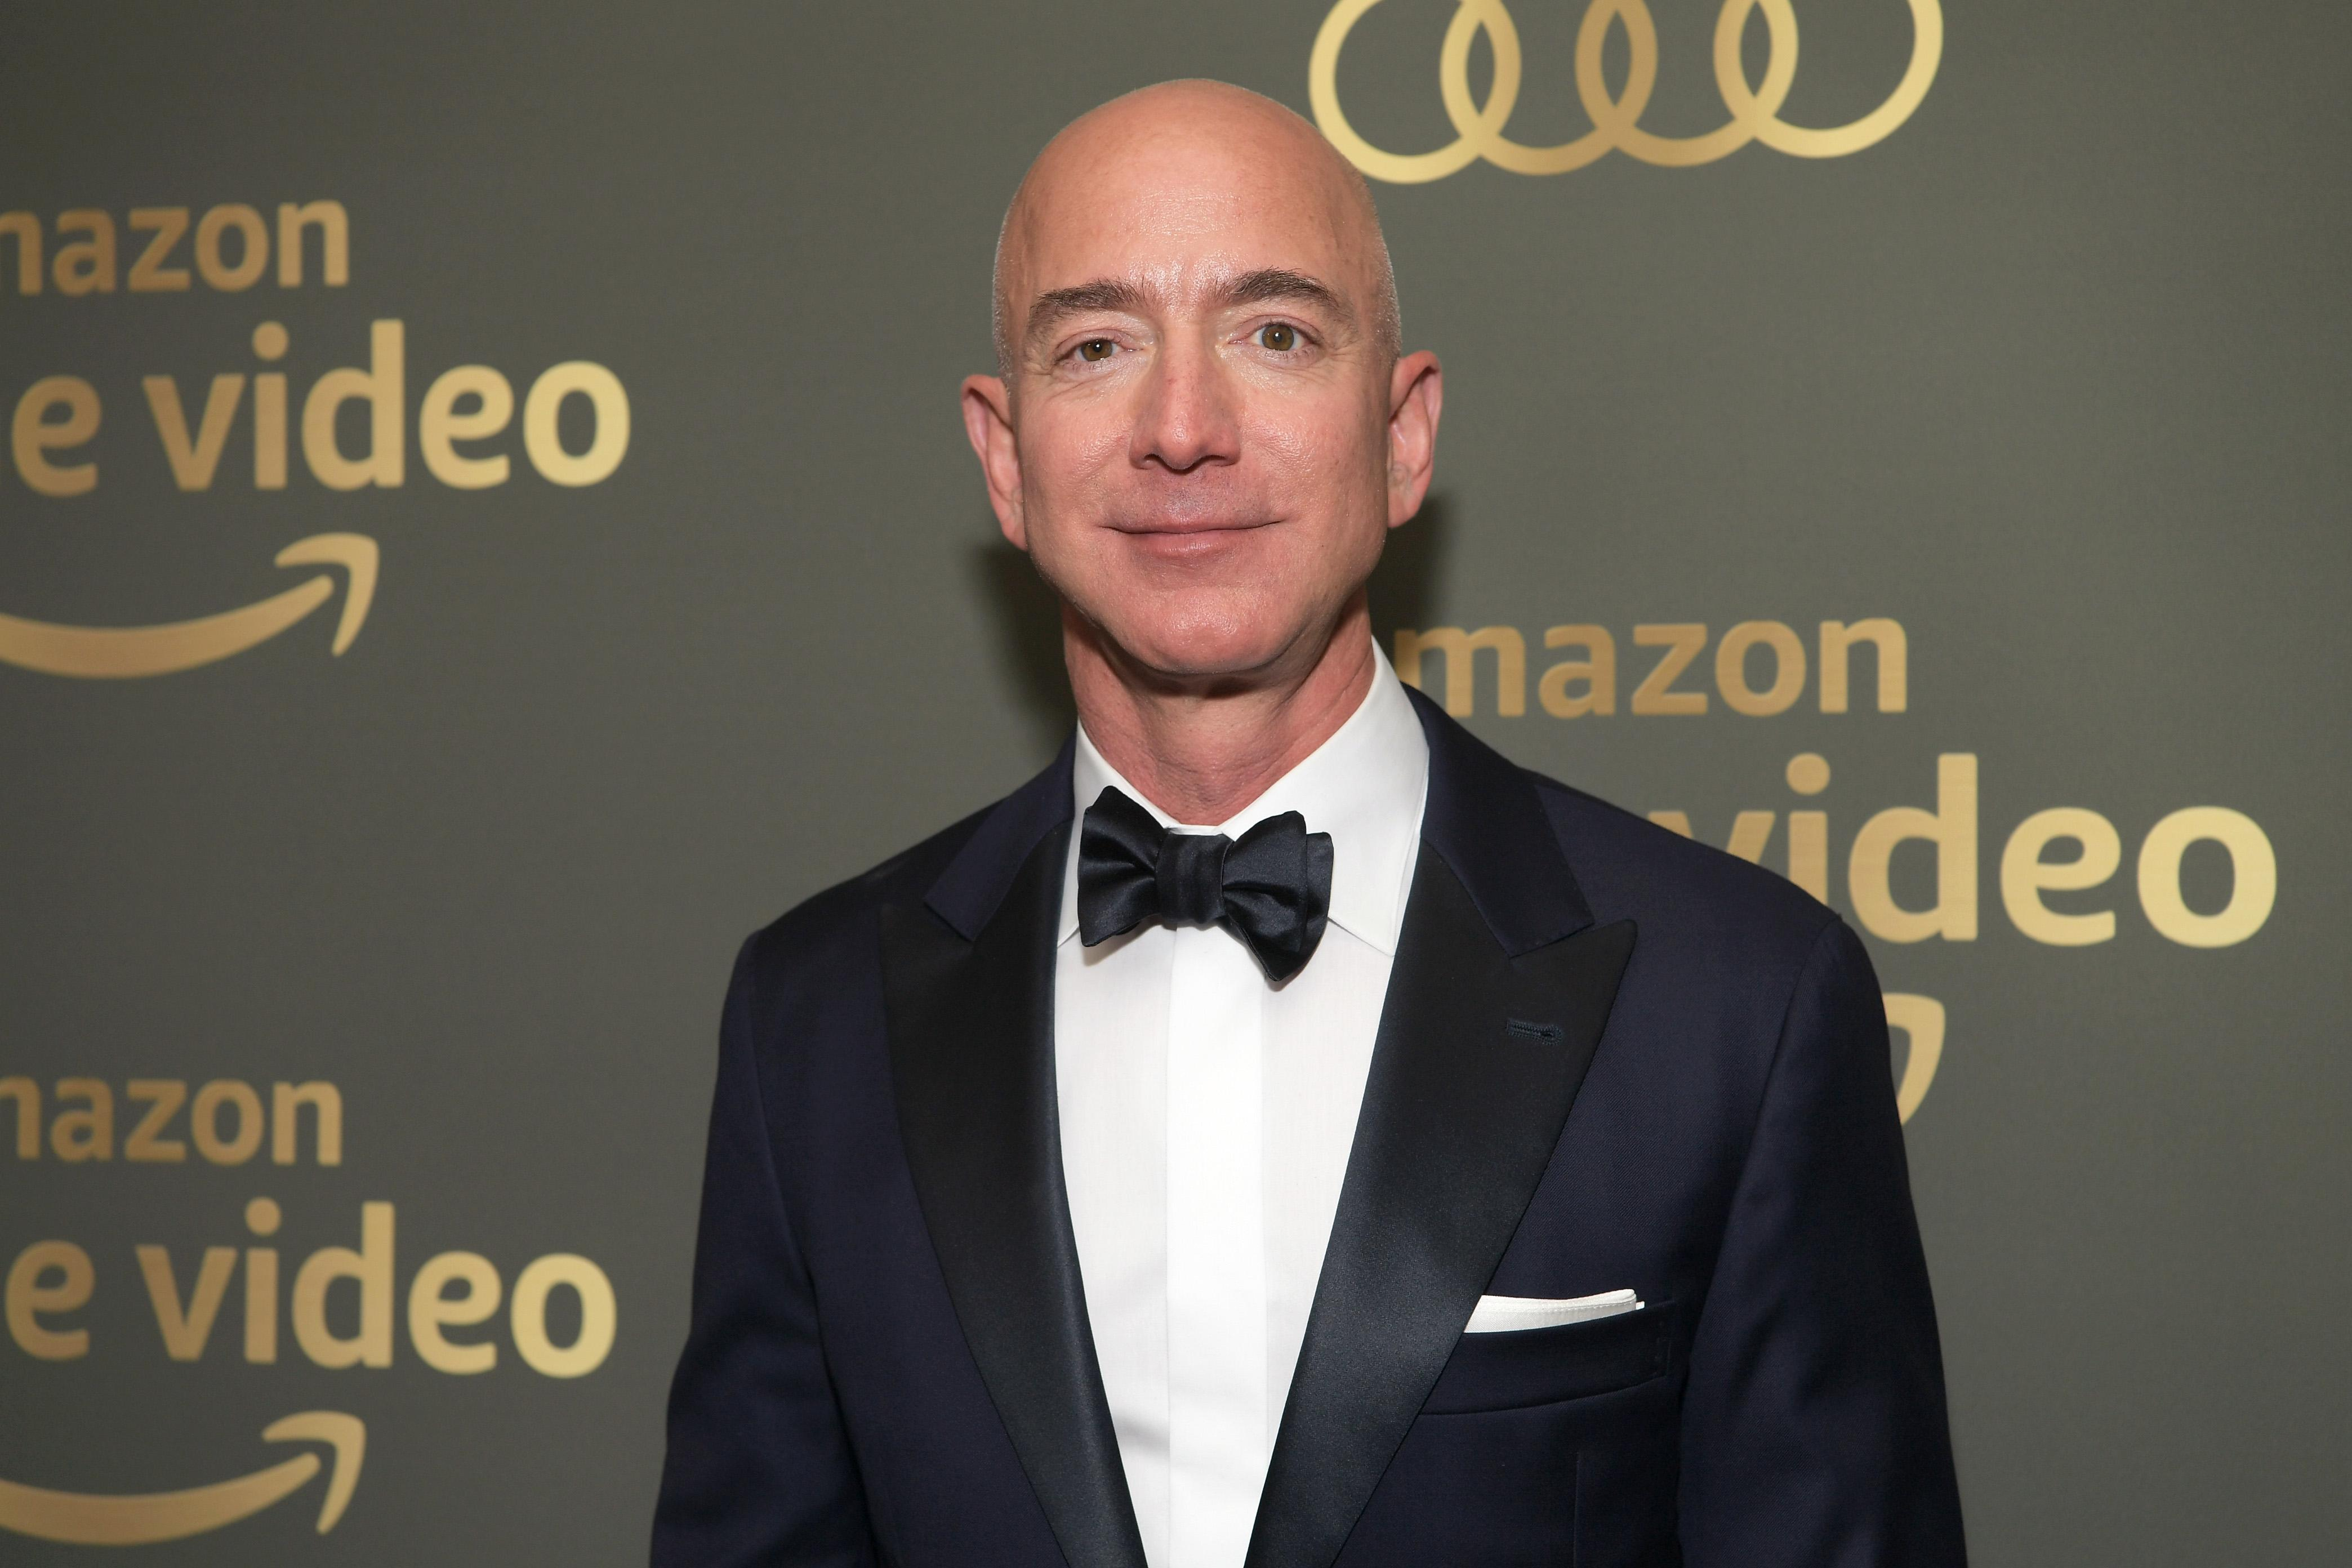 GettyImages-Jeff Bezos